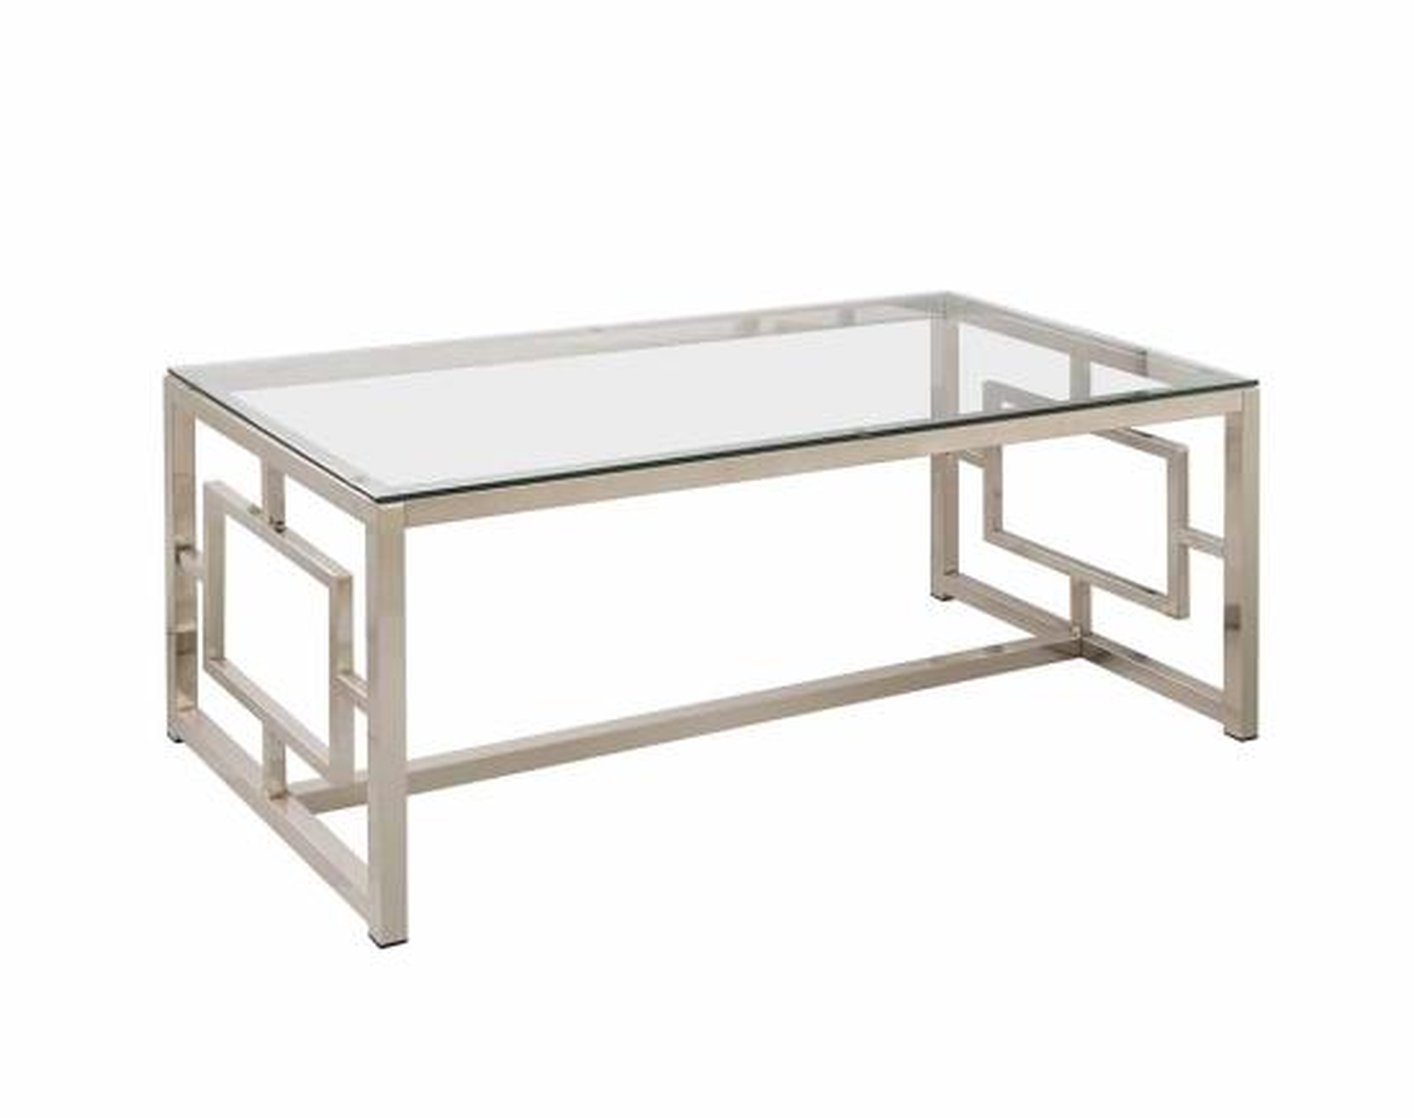 silver and glass coffee table - home design minimalist